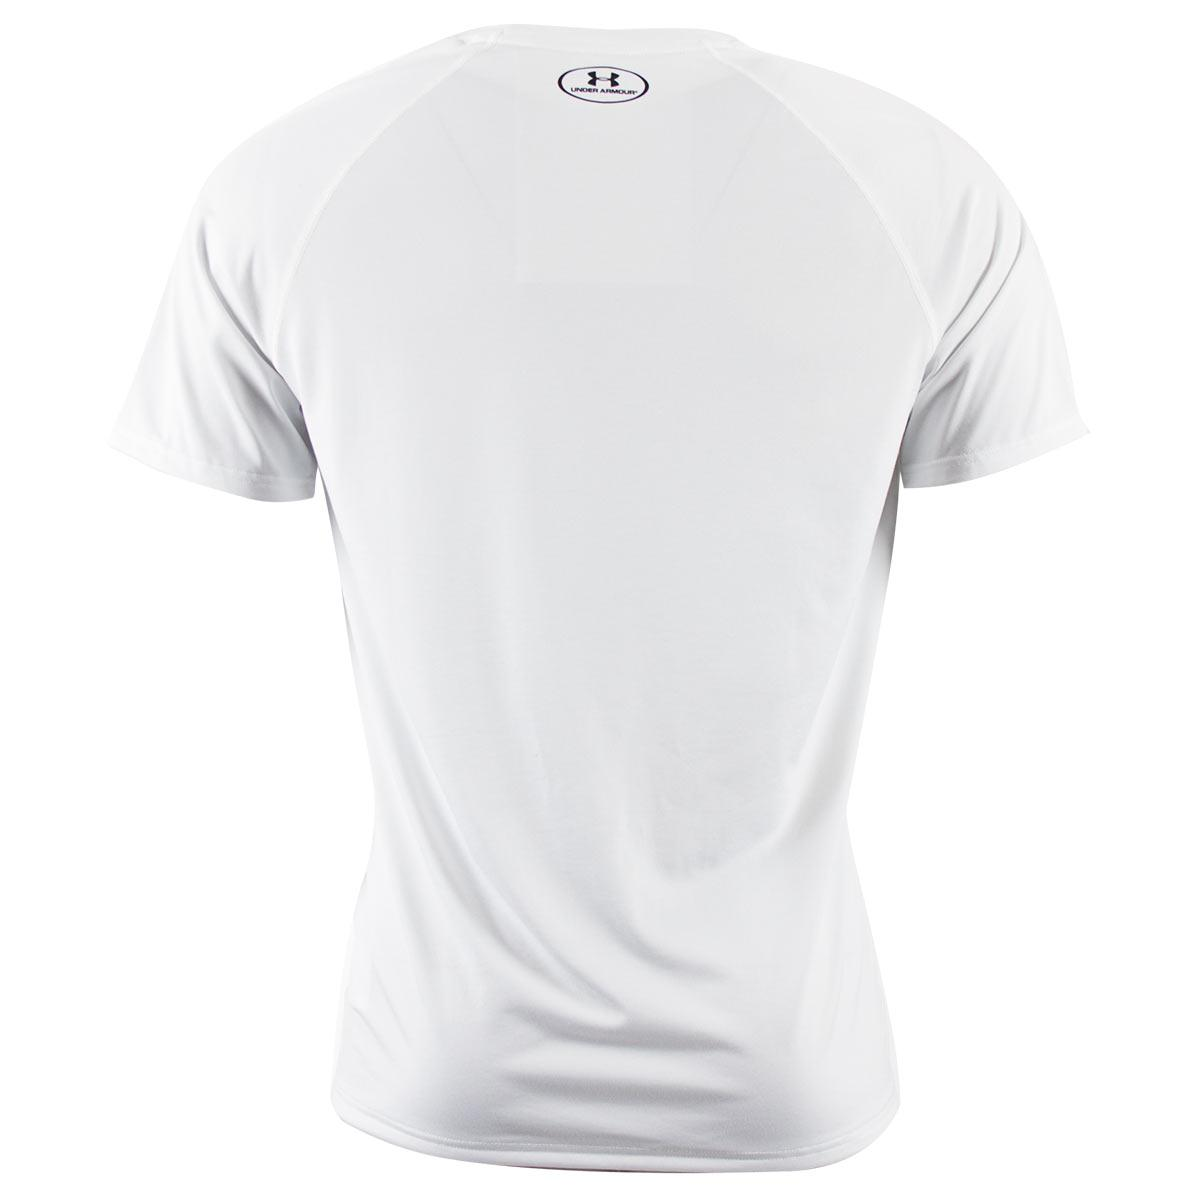 White Under Sink Bathroom Cabinet Undersink Storage: White Under Armour Heatgear Tech Tee Shirt (Short Sleeved